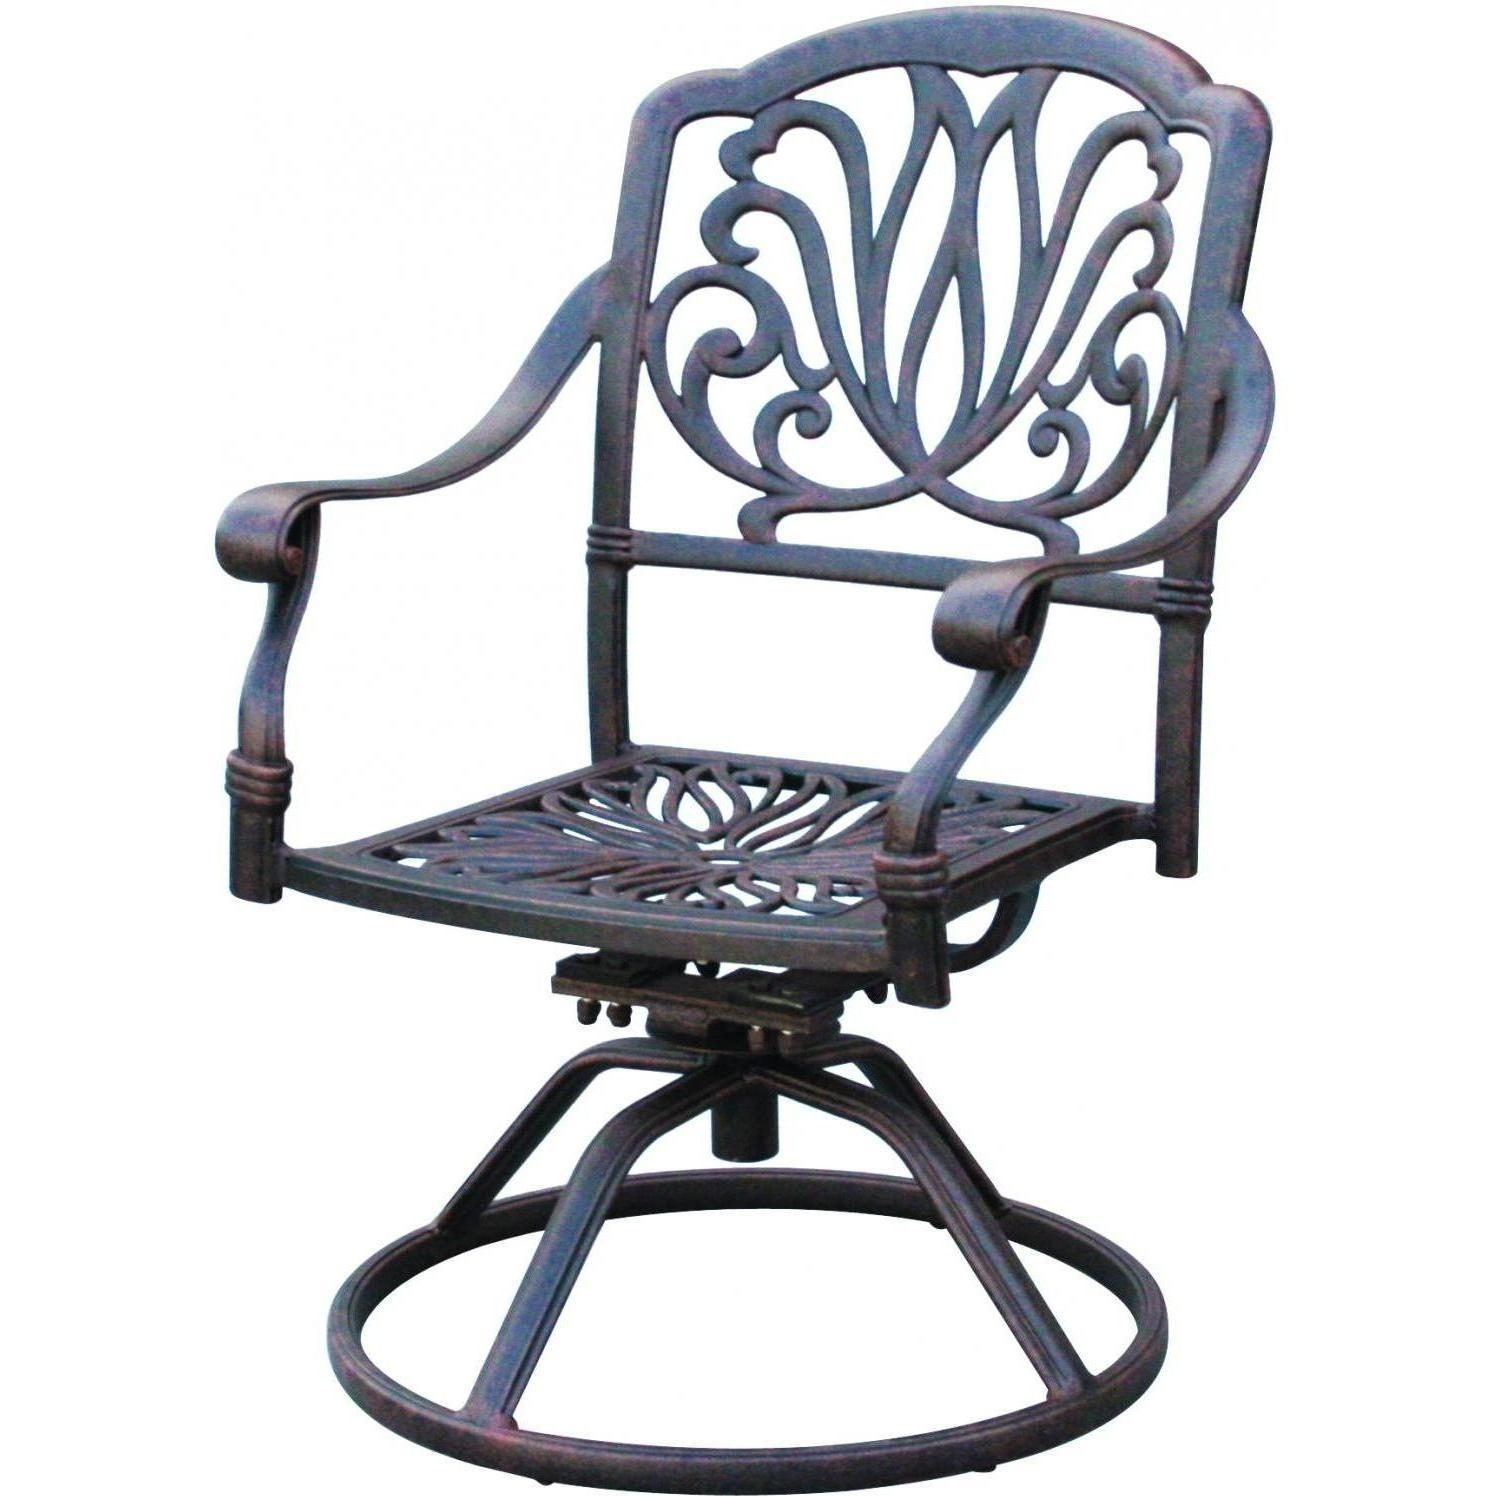 Darlee Elisabeth Cast Aluminum Patio Swivel Rocker Dining Chair Intended For Aluminum Patio Rocking Chairs (View 6 of 15)